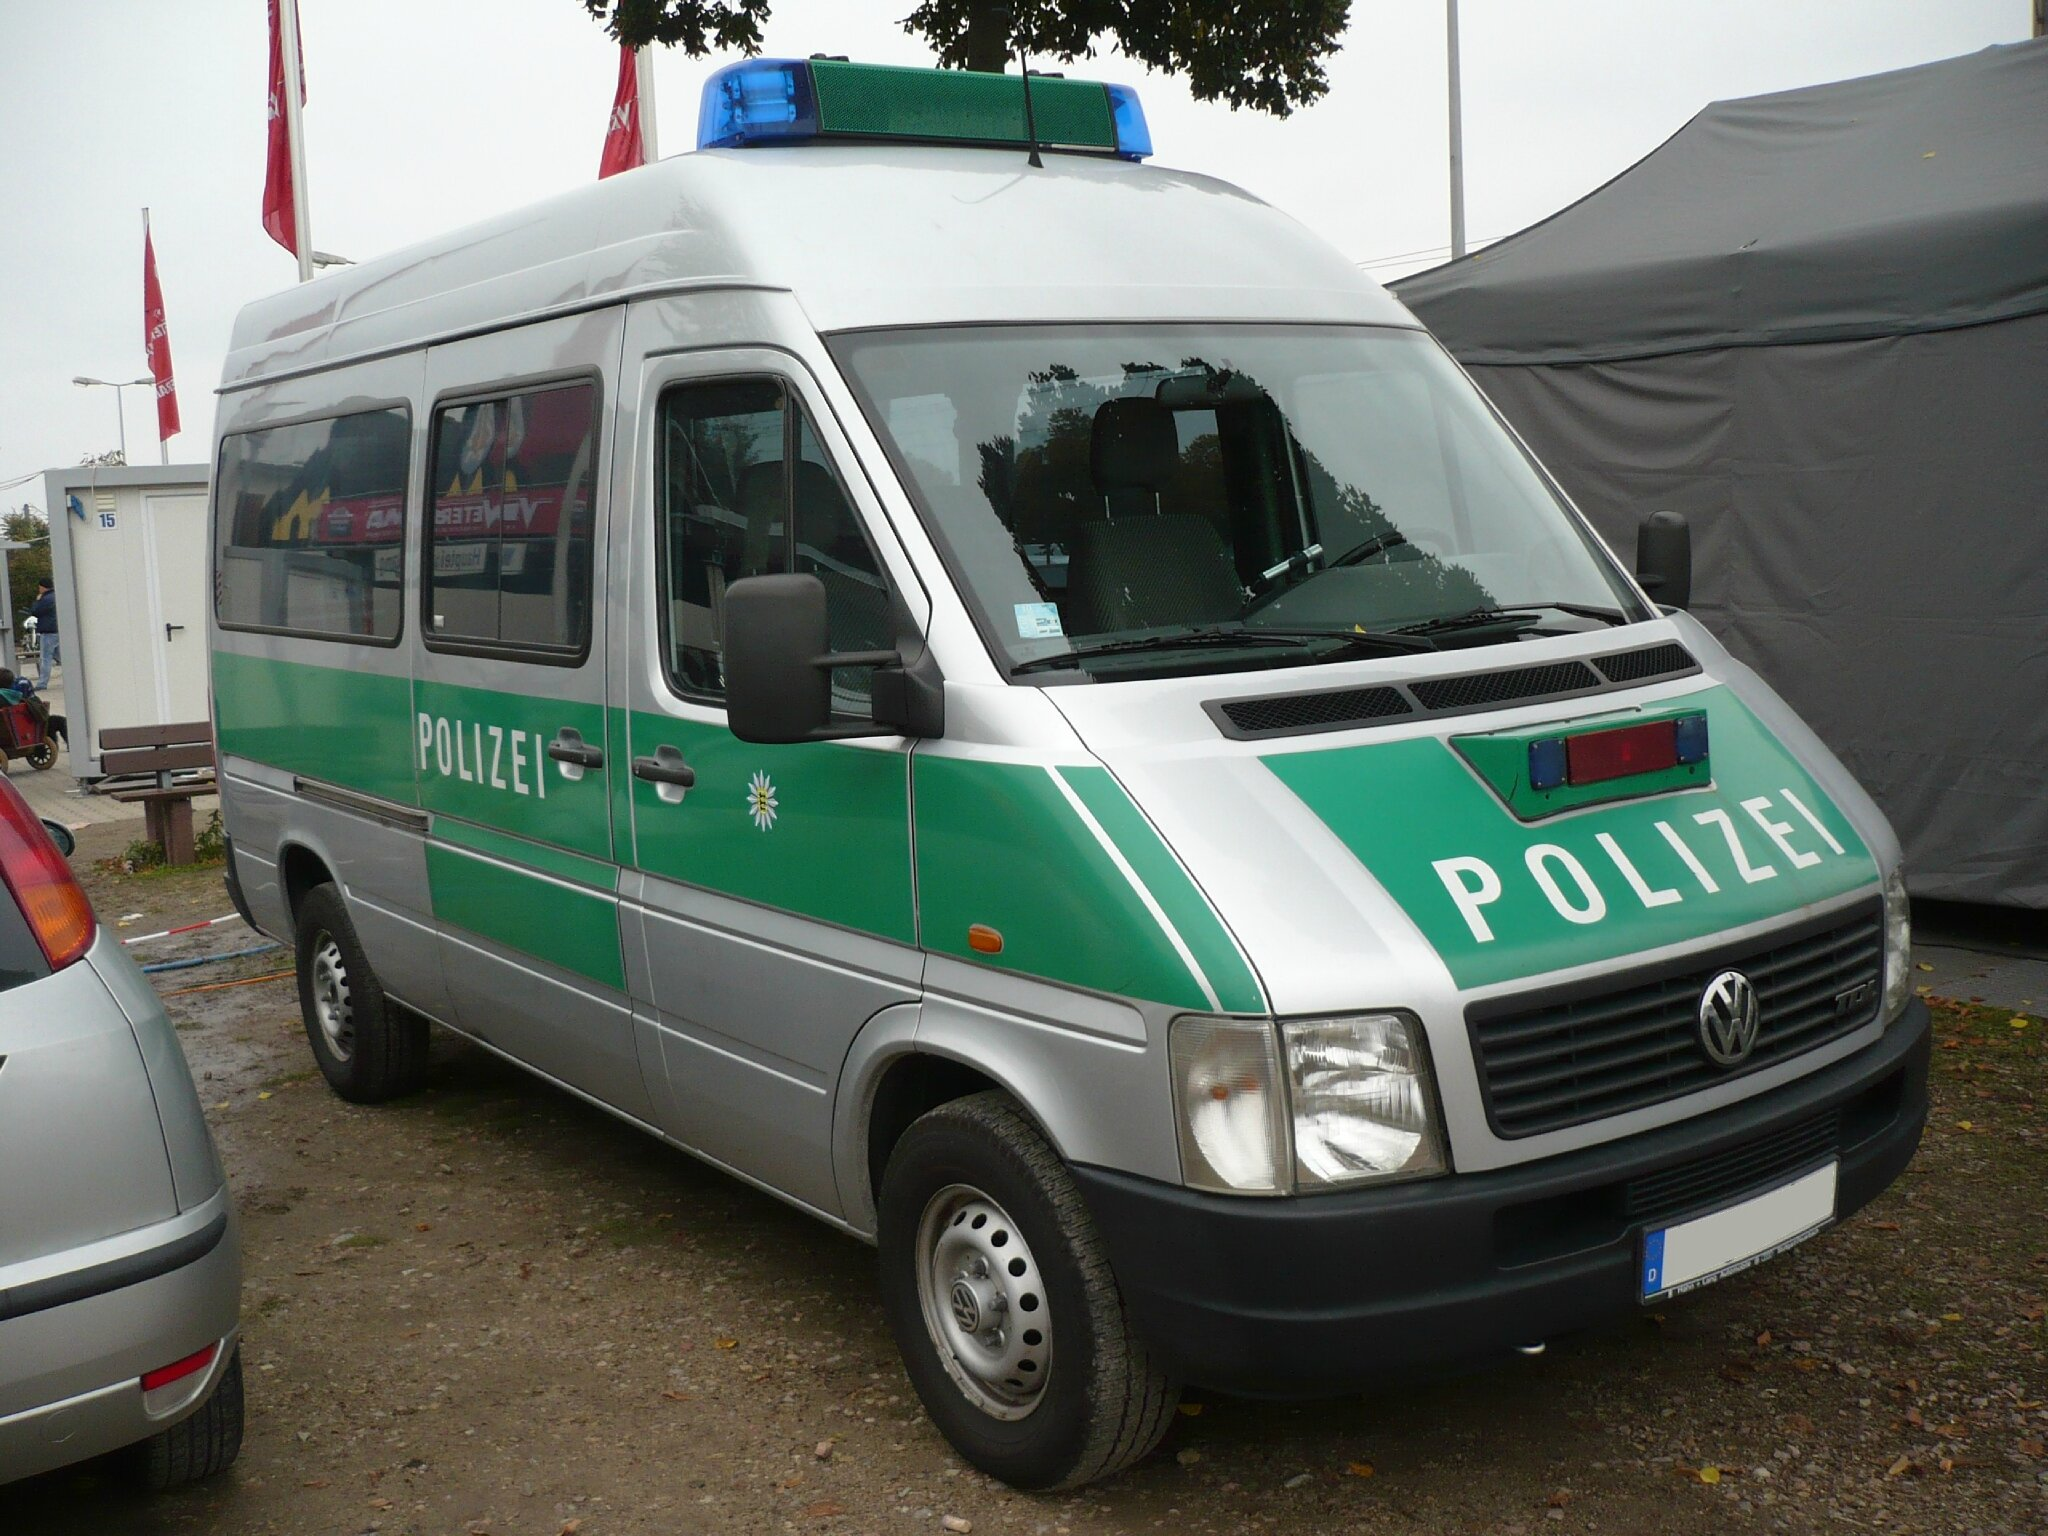 volkswagen lt tdi polizei mannheim 1 photo de 103 veterama et alentours mannheim le 12. Black Bedroom Furniture Sets. Home Design Ideas